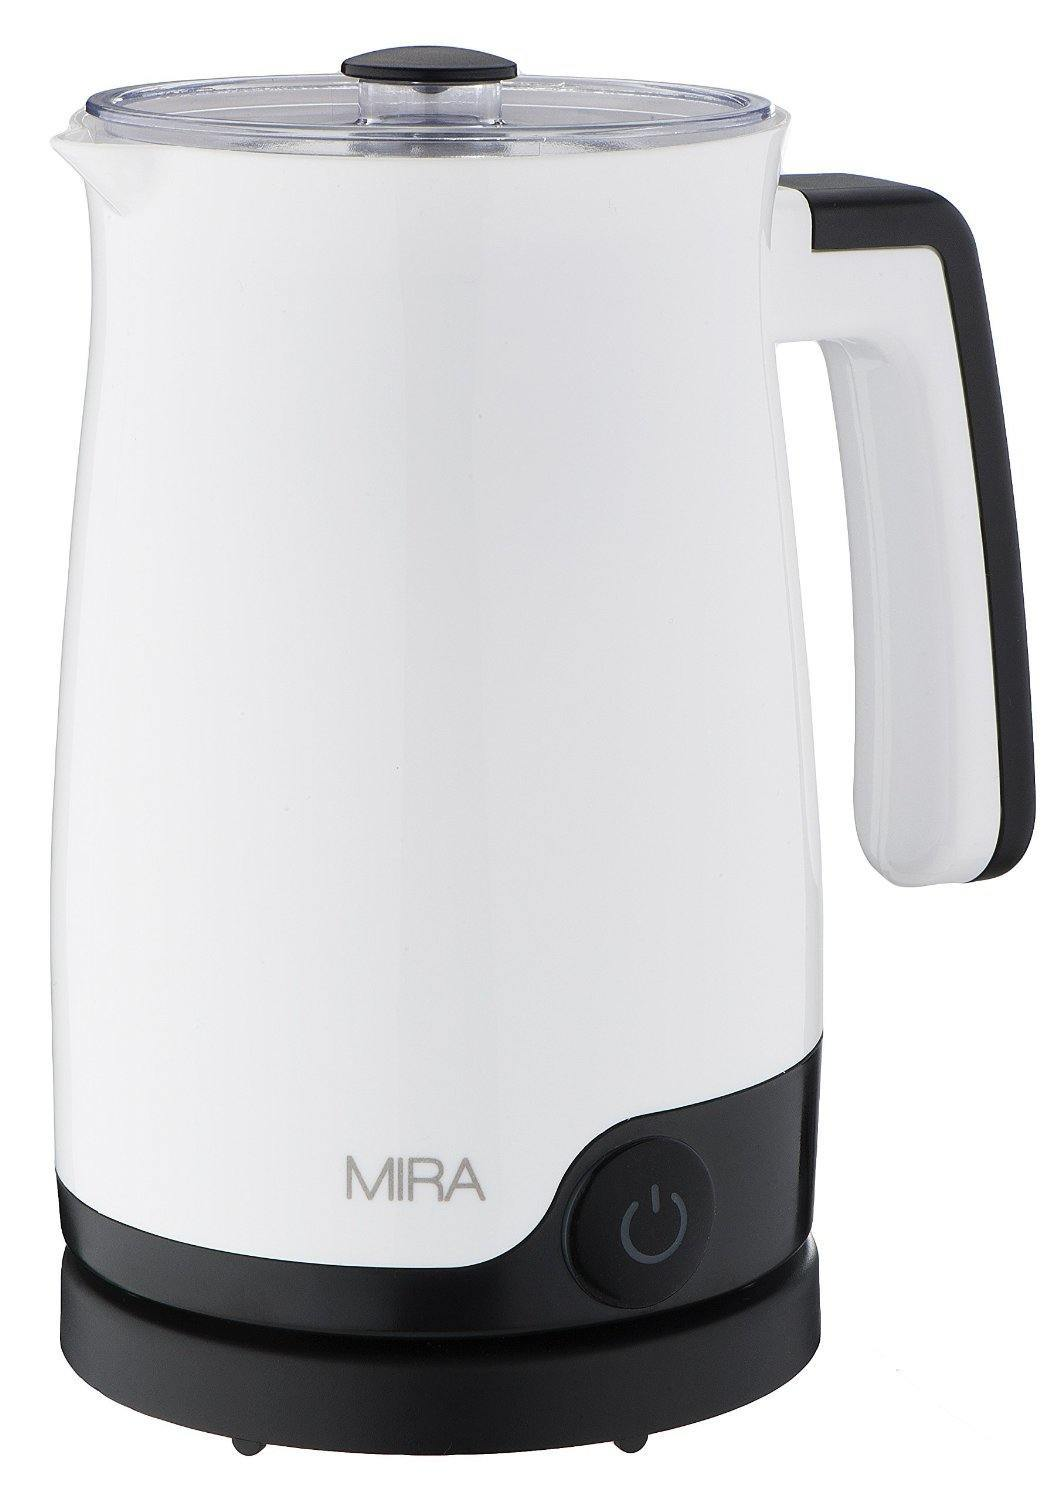 mira milk frother